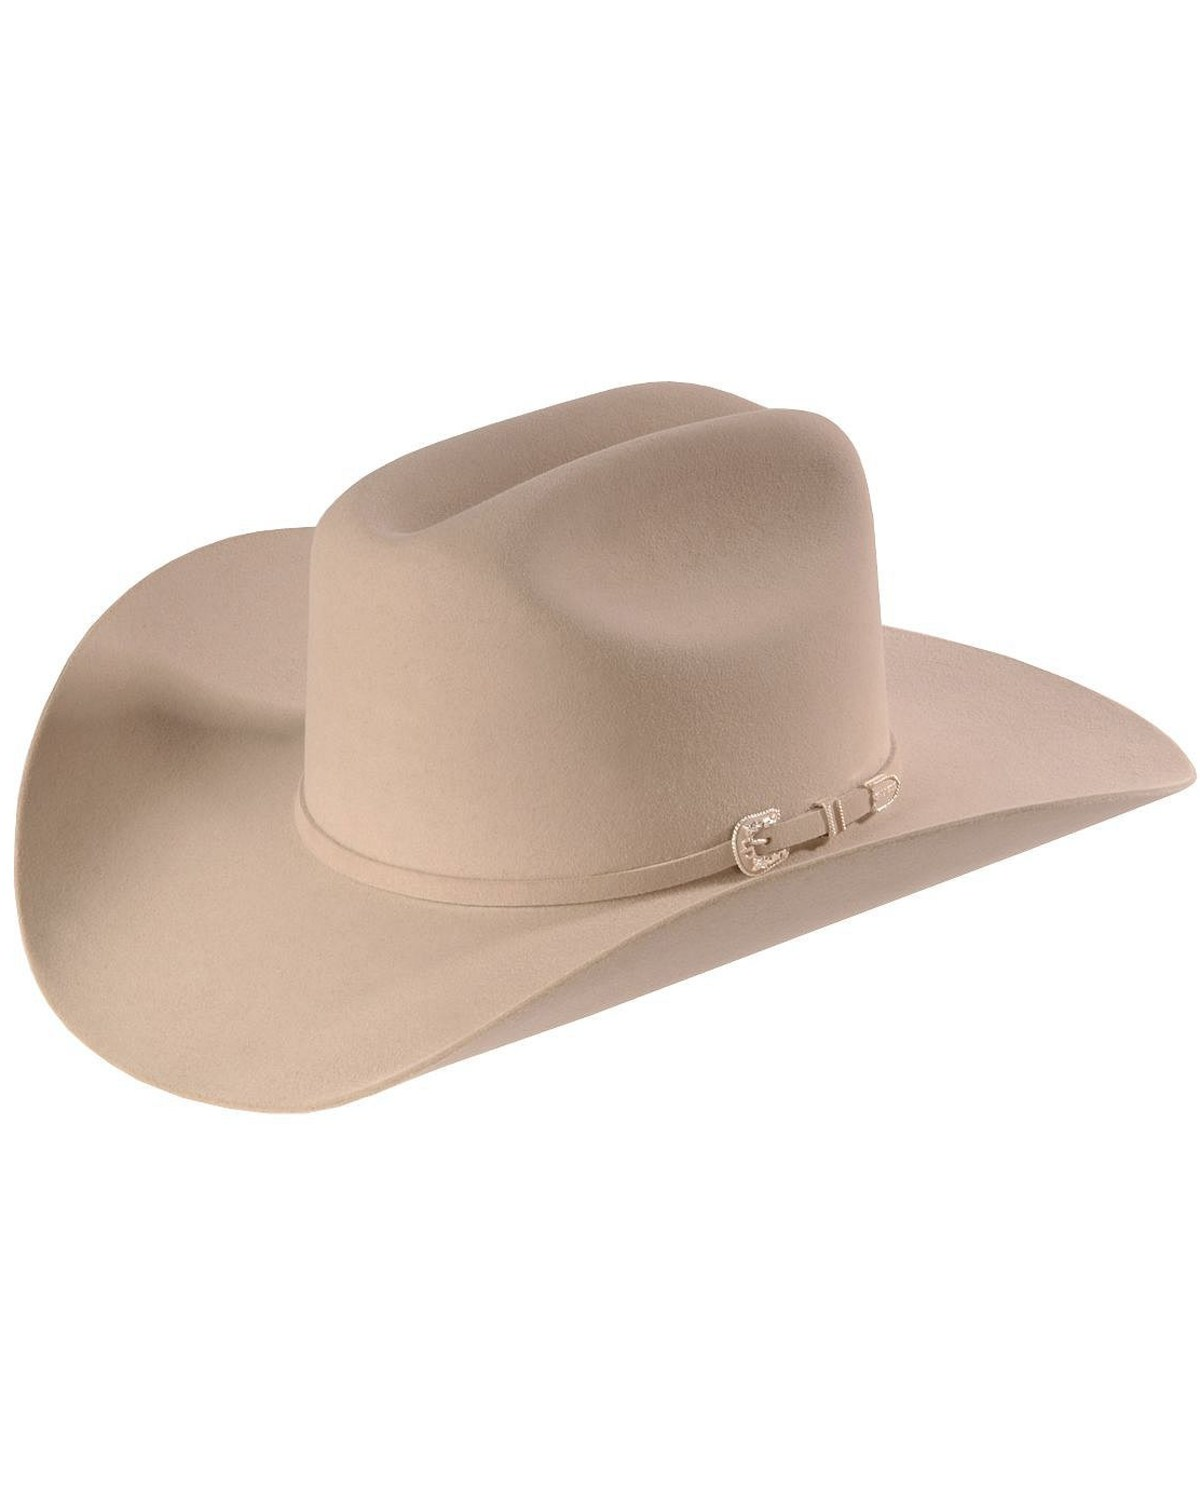 5f46e76097323b Zoomed Image Stetson 6X Skyline Fur Felt Western Hat, Silverbelly, hi-res